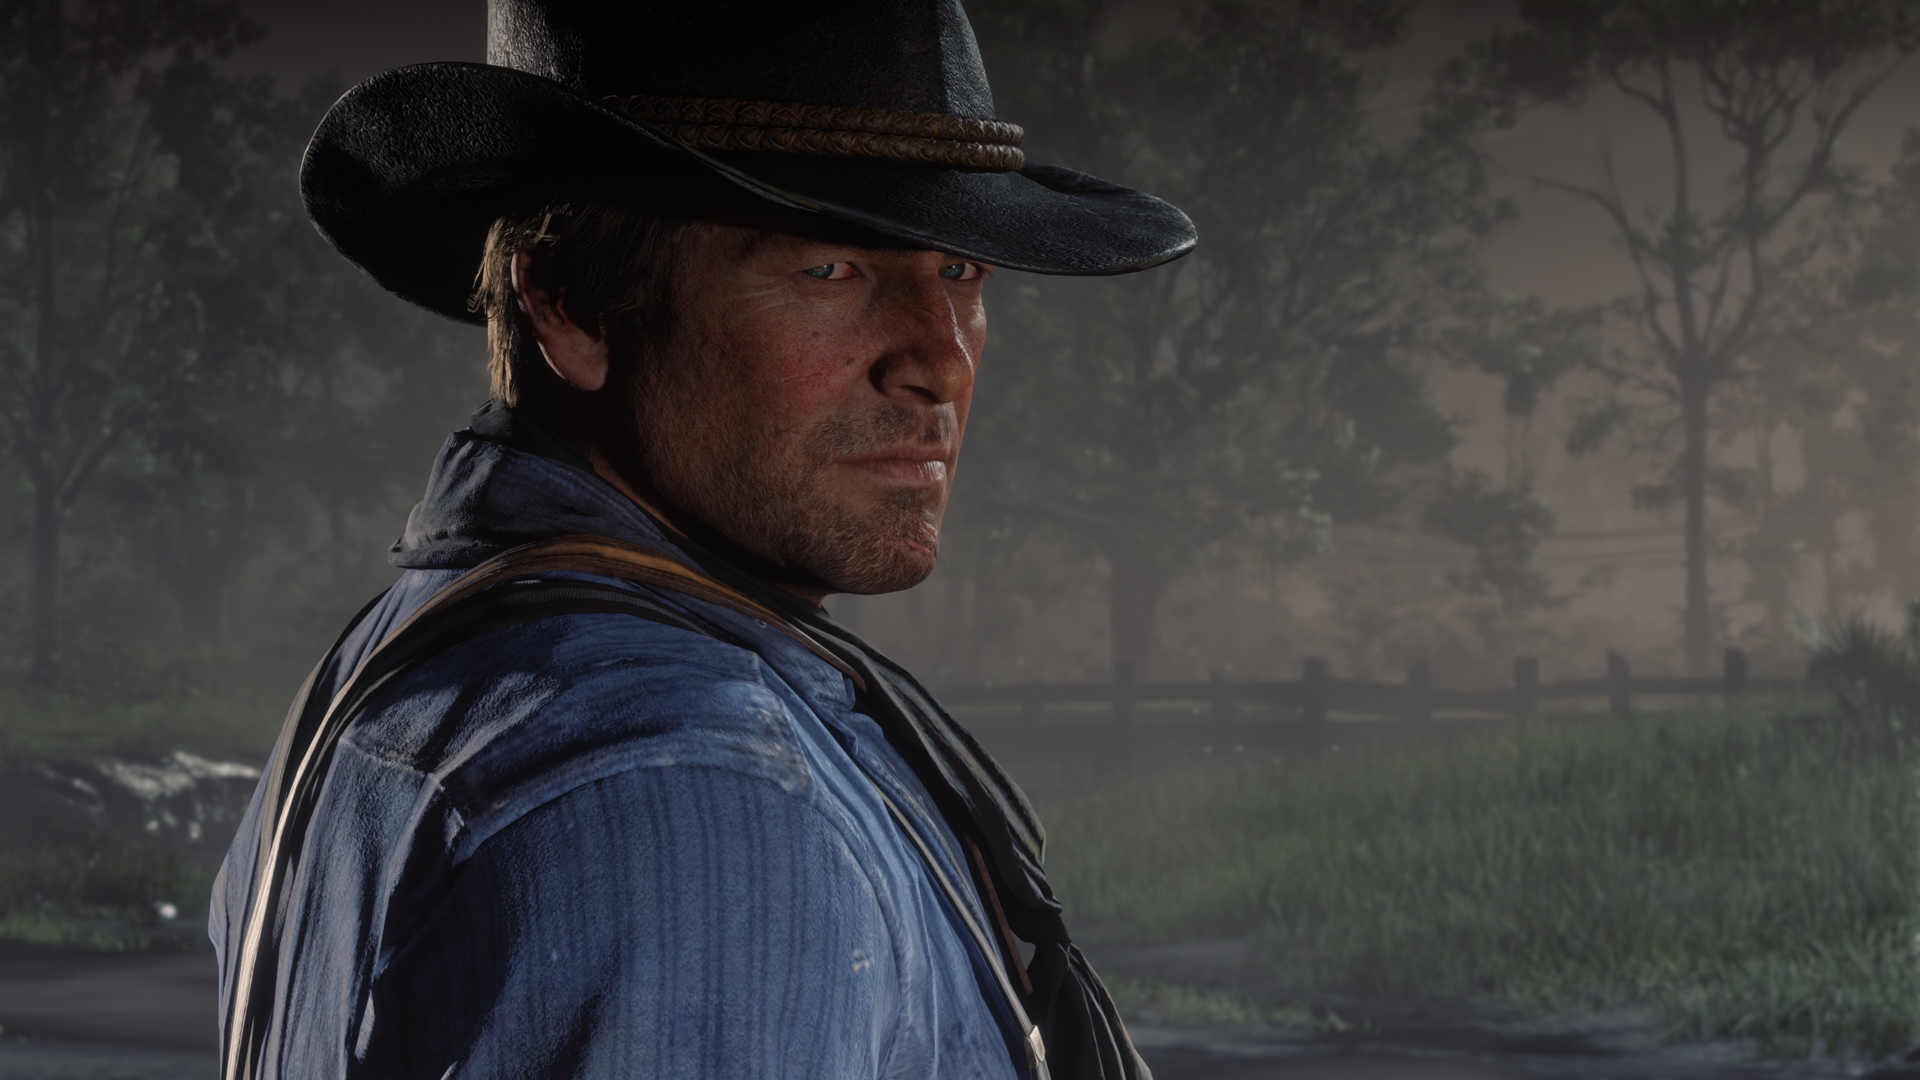 Red Dead Redemption 2 gets new features on PC